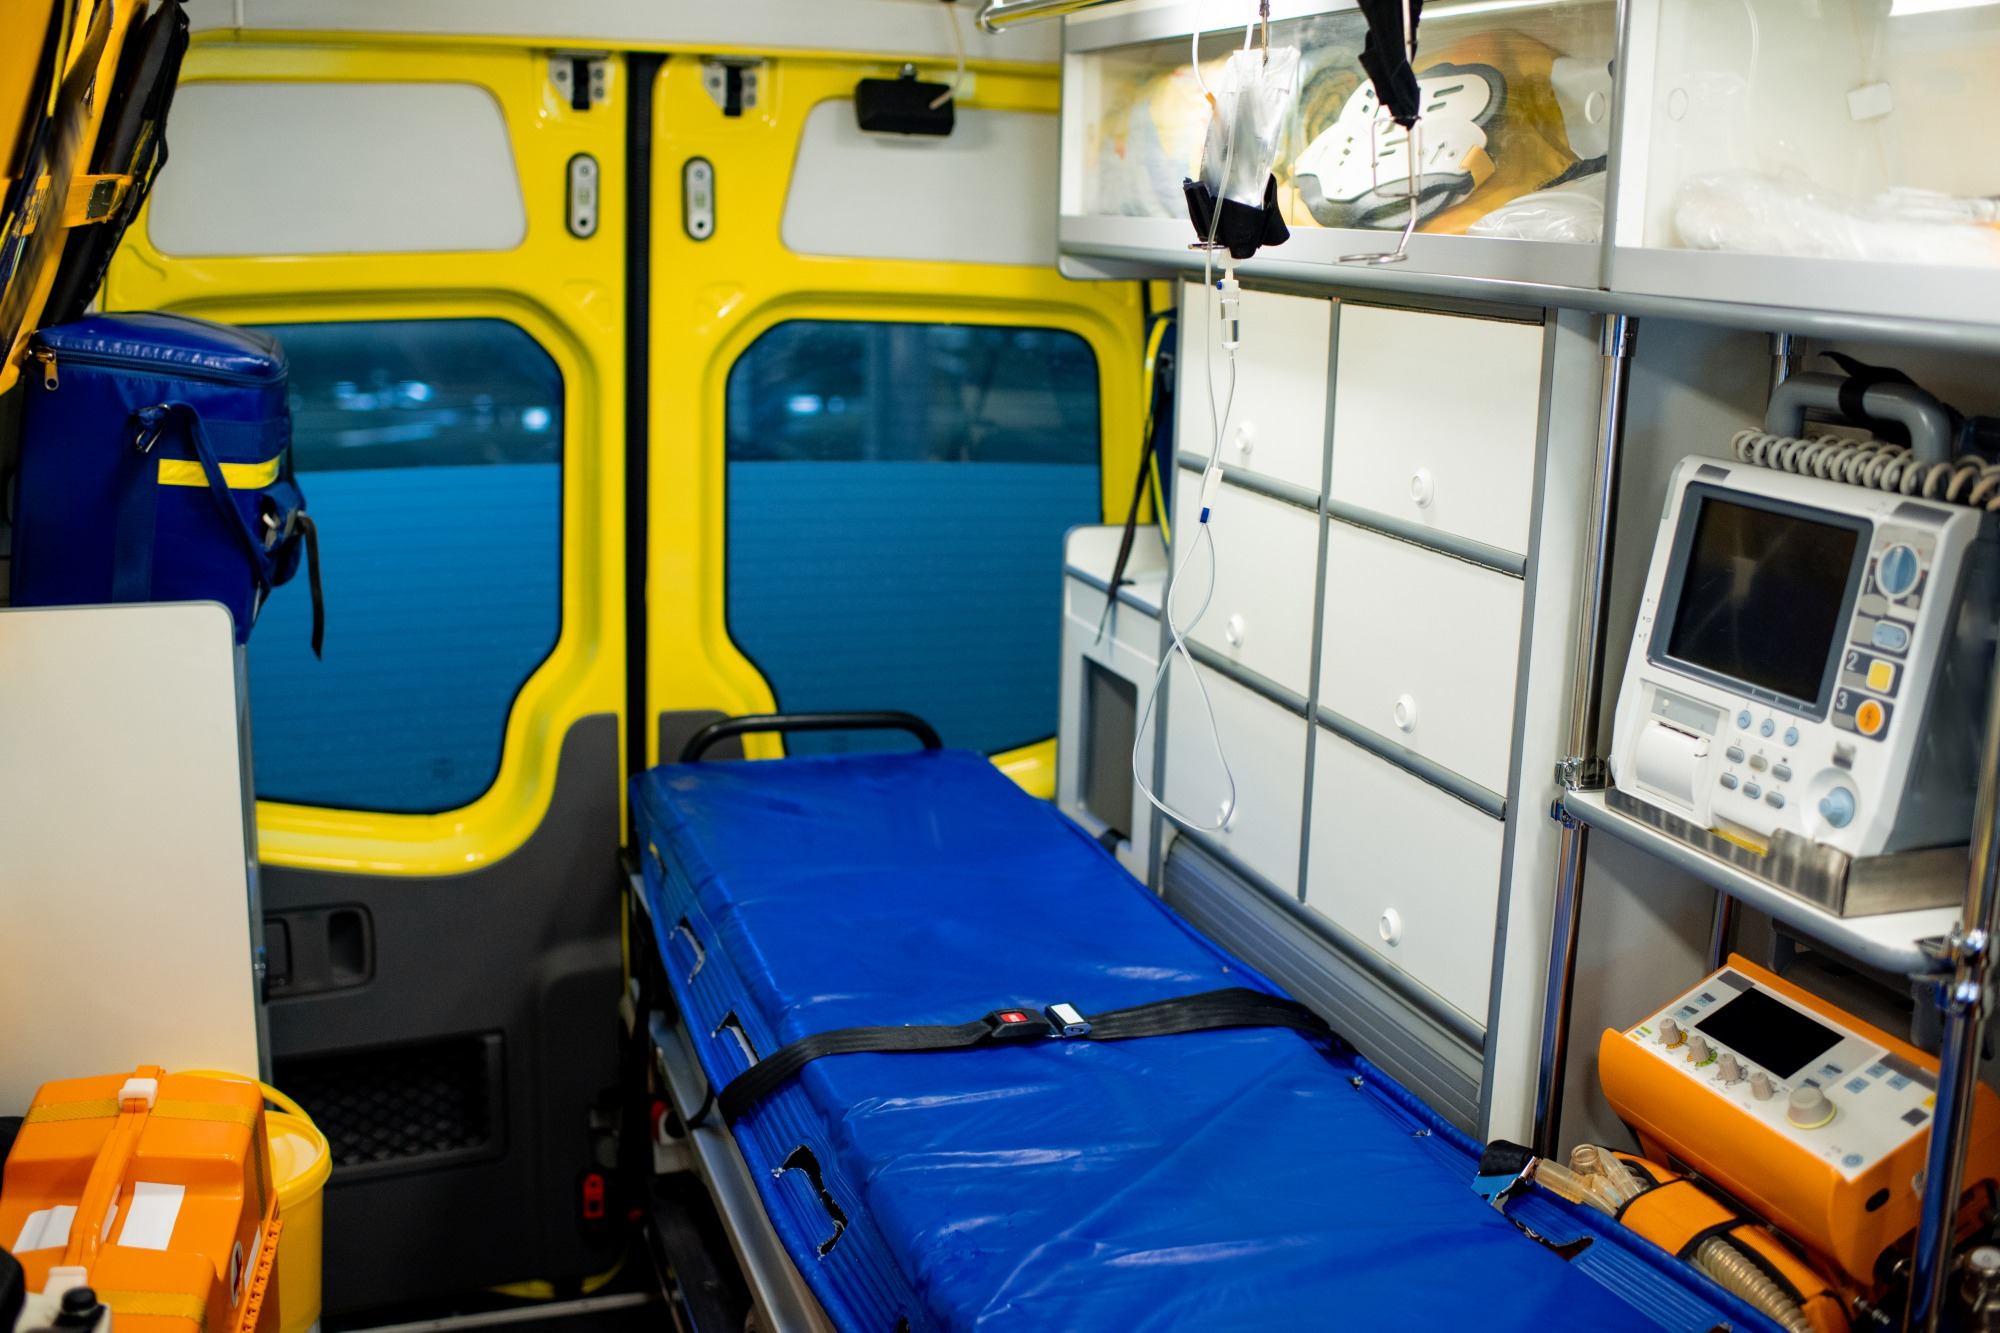 interior-of-ambulance car with stretcher - Decorative